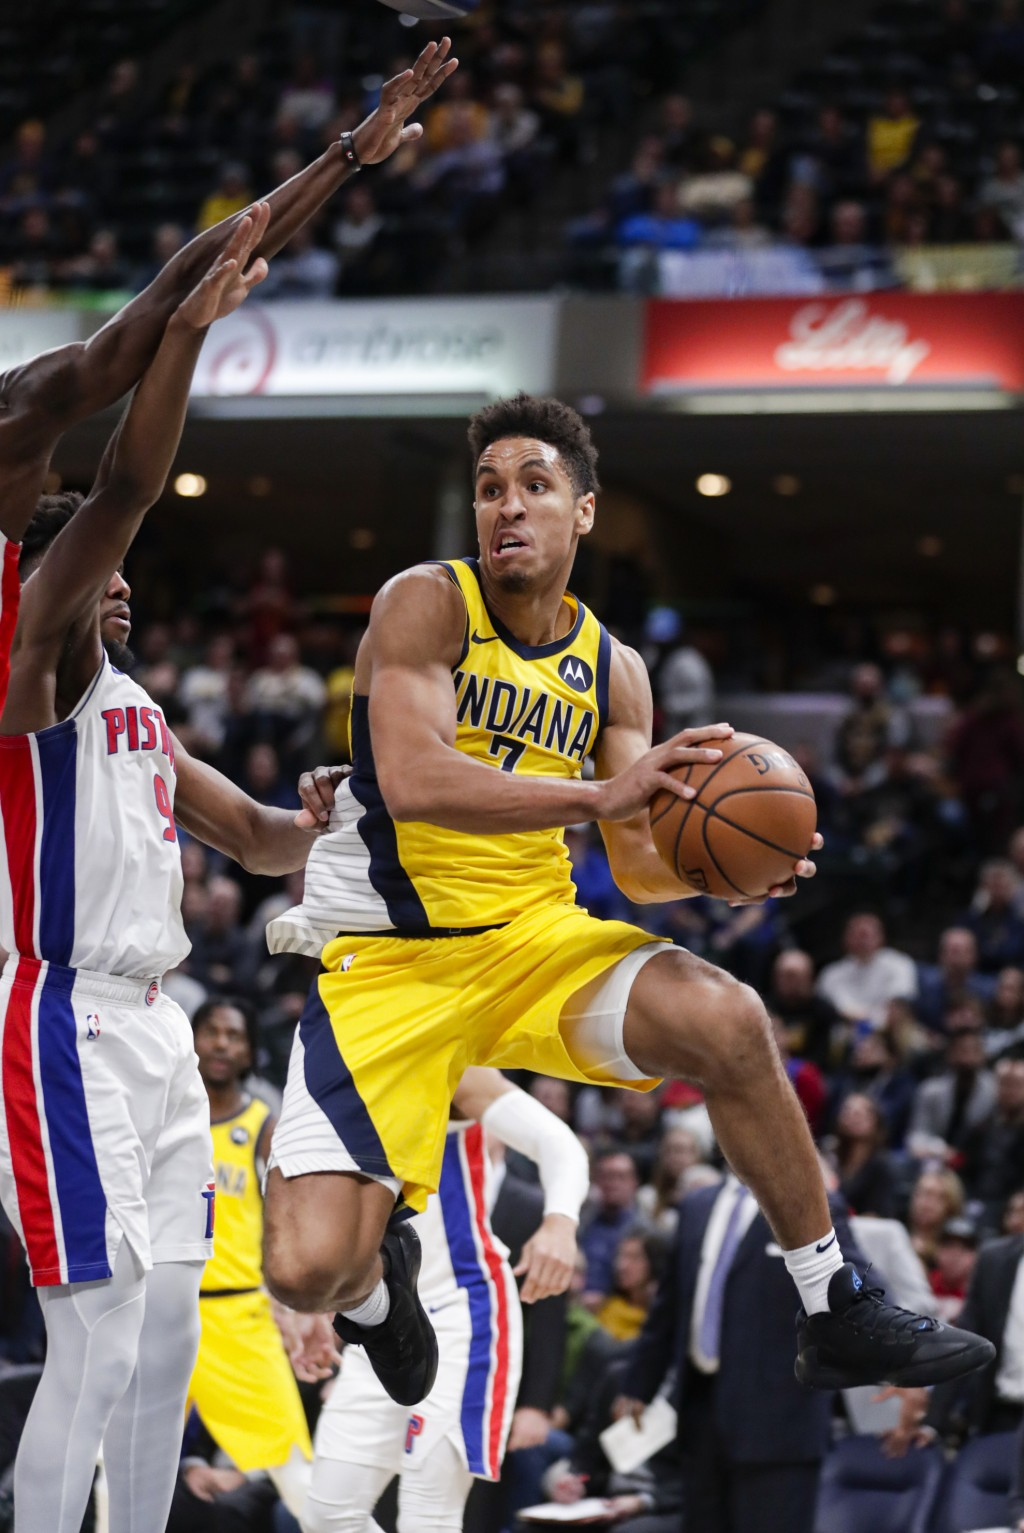 Indiana Pacers guard Malcolm Brogdon (7) looks to pass the ball in front of Detroit Pistons guard Langston Galloway (9) during the second half of an N...